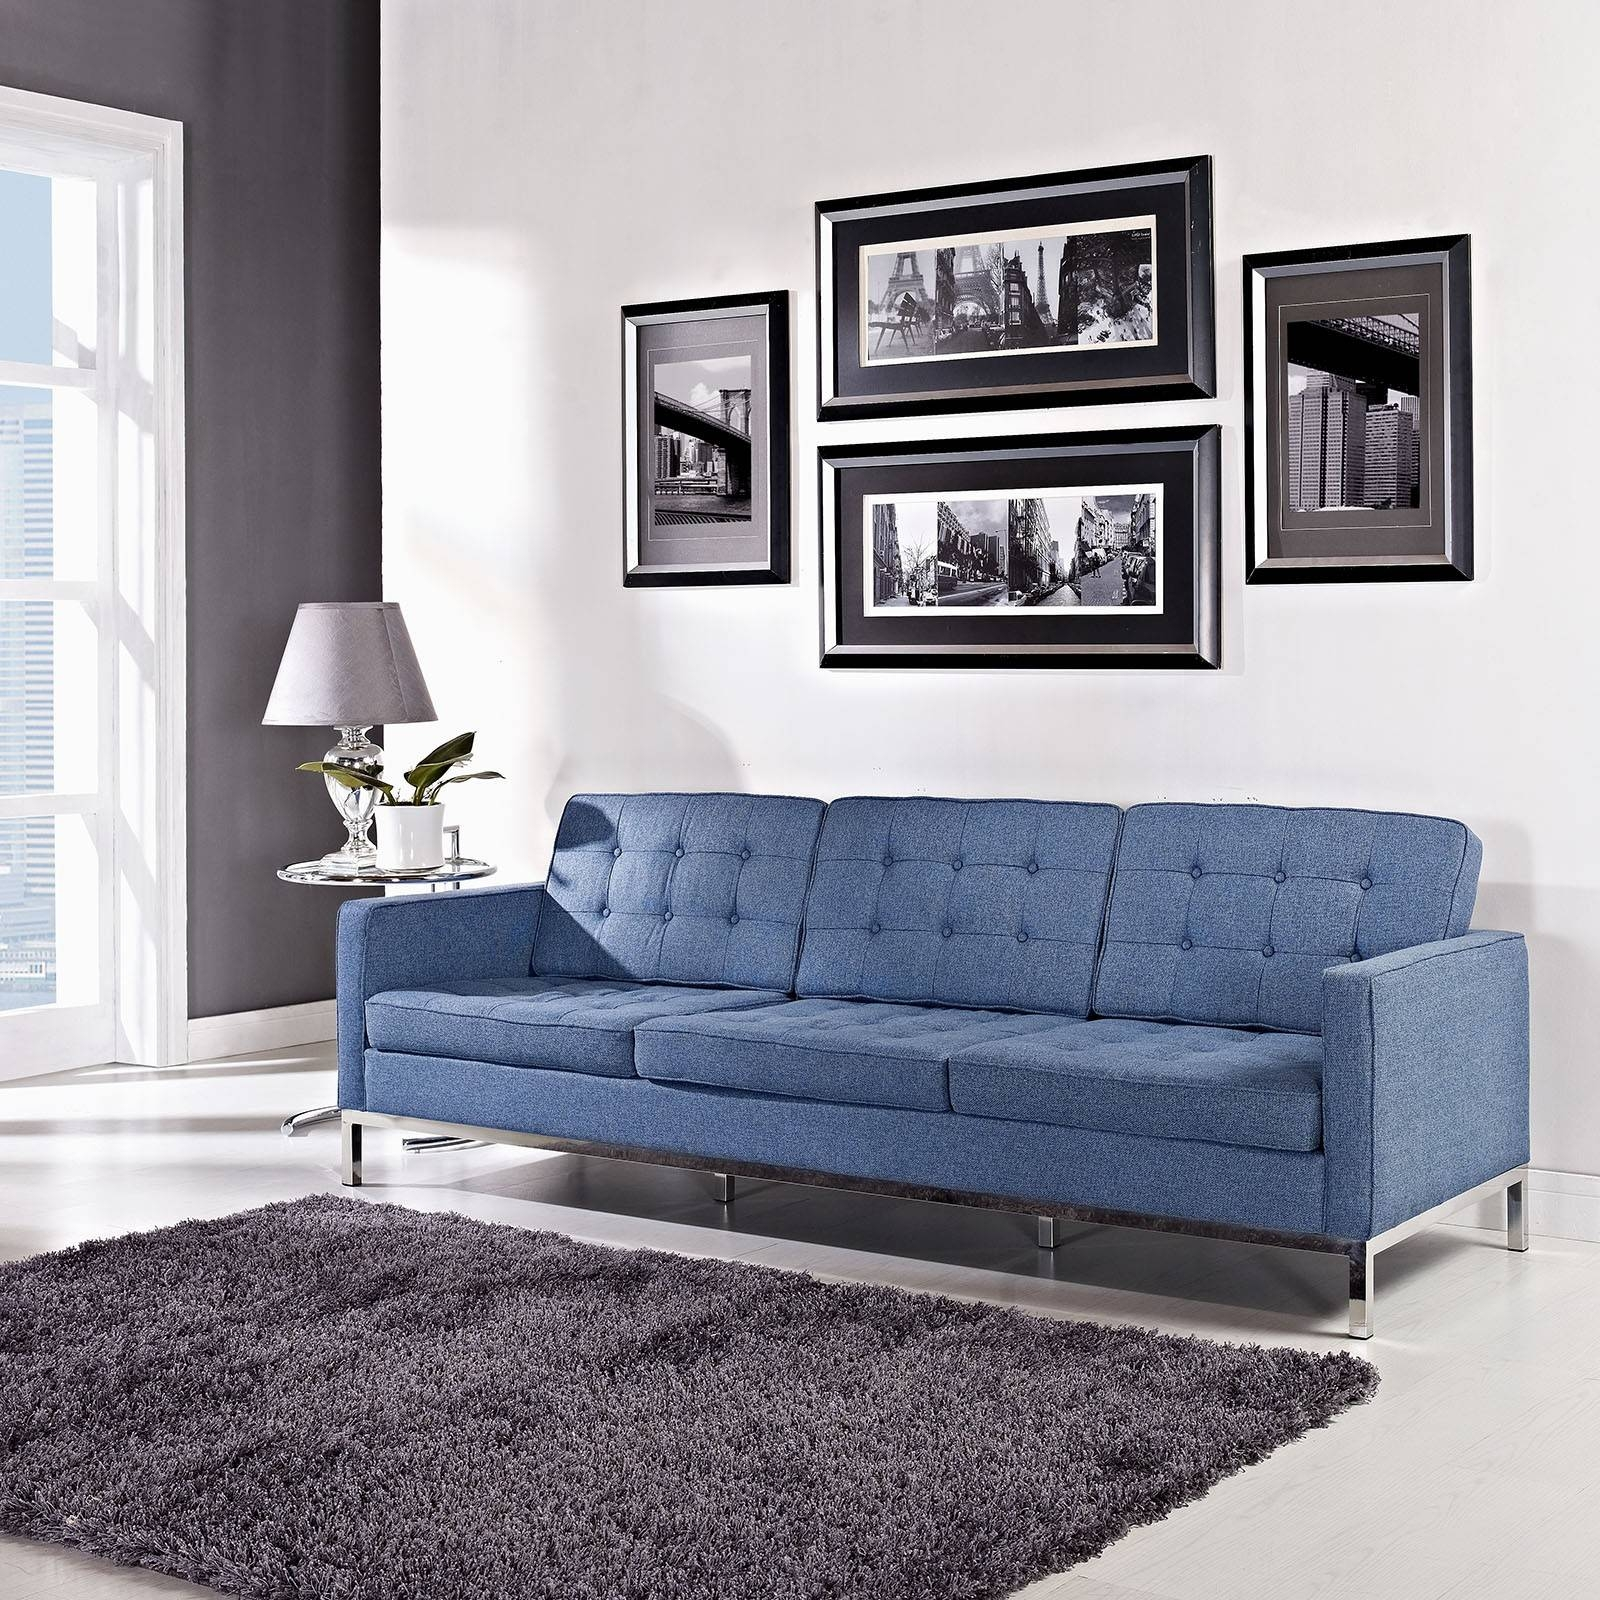 Florence Knoll Sofa within Florence Knoll Style Sofas (Image 4 of 25)